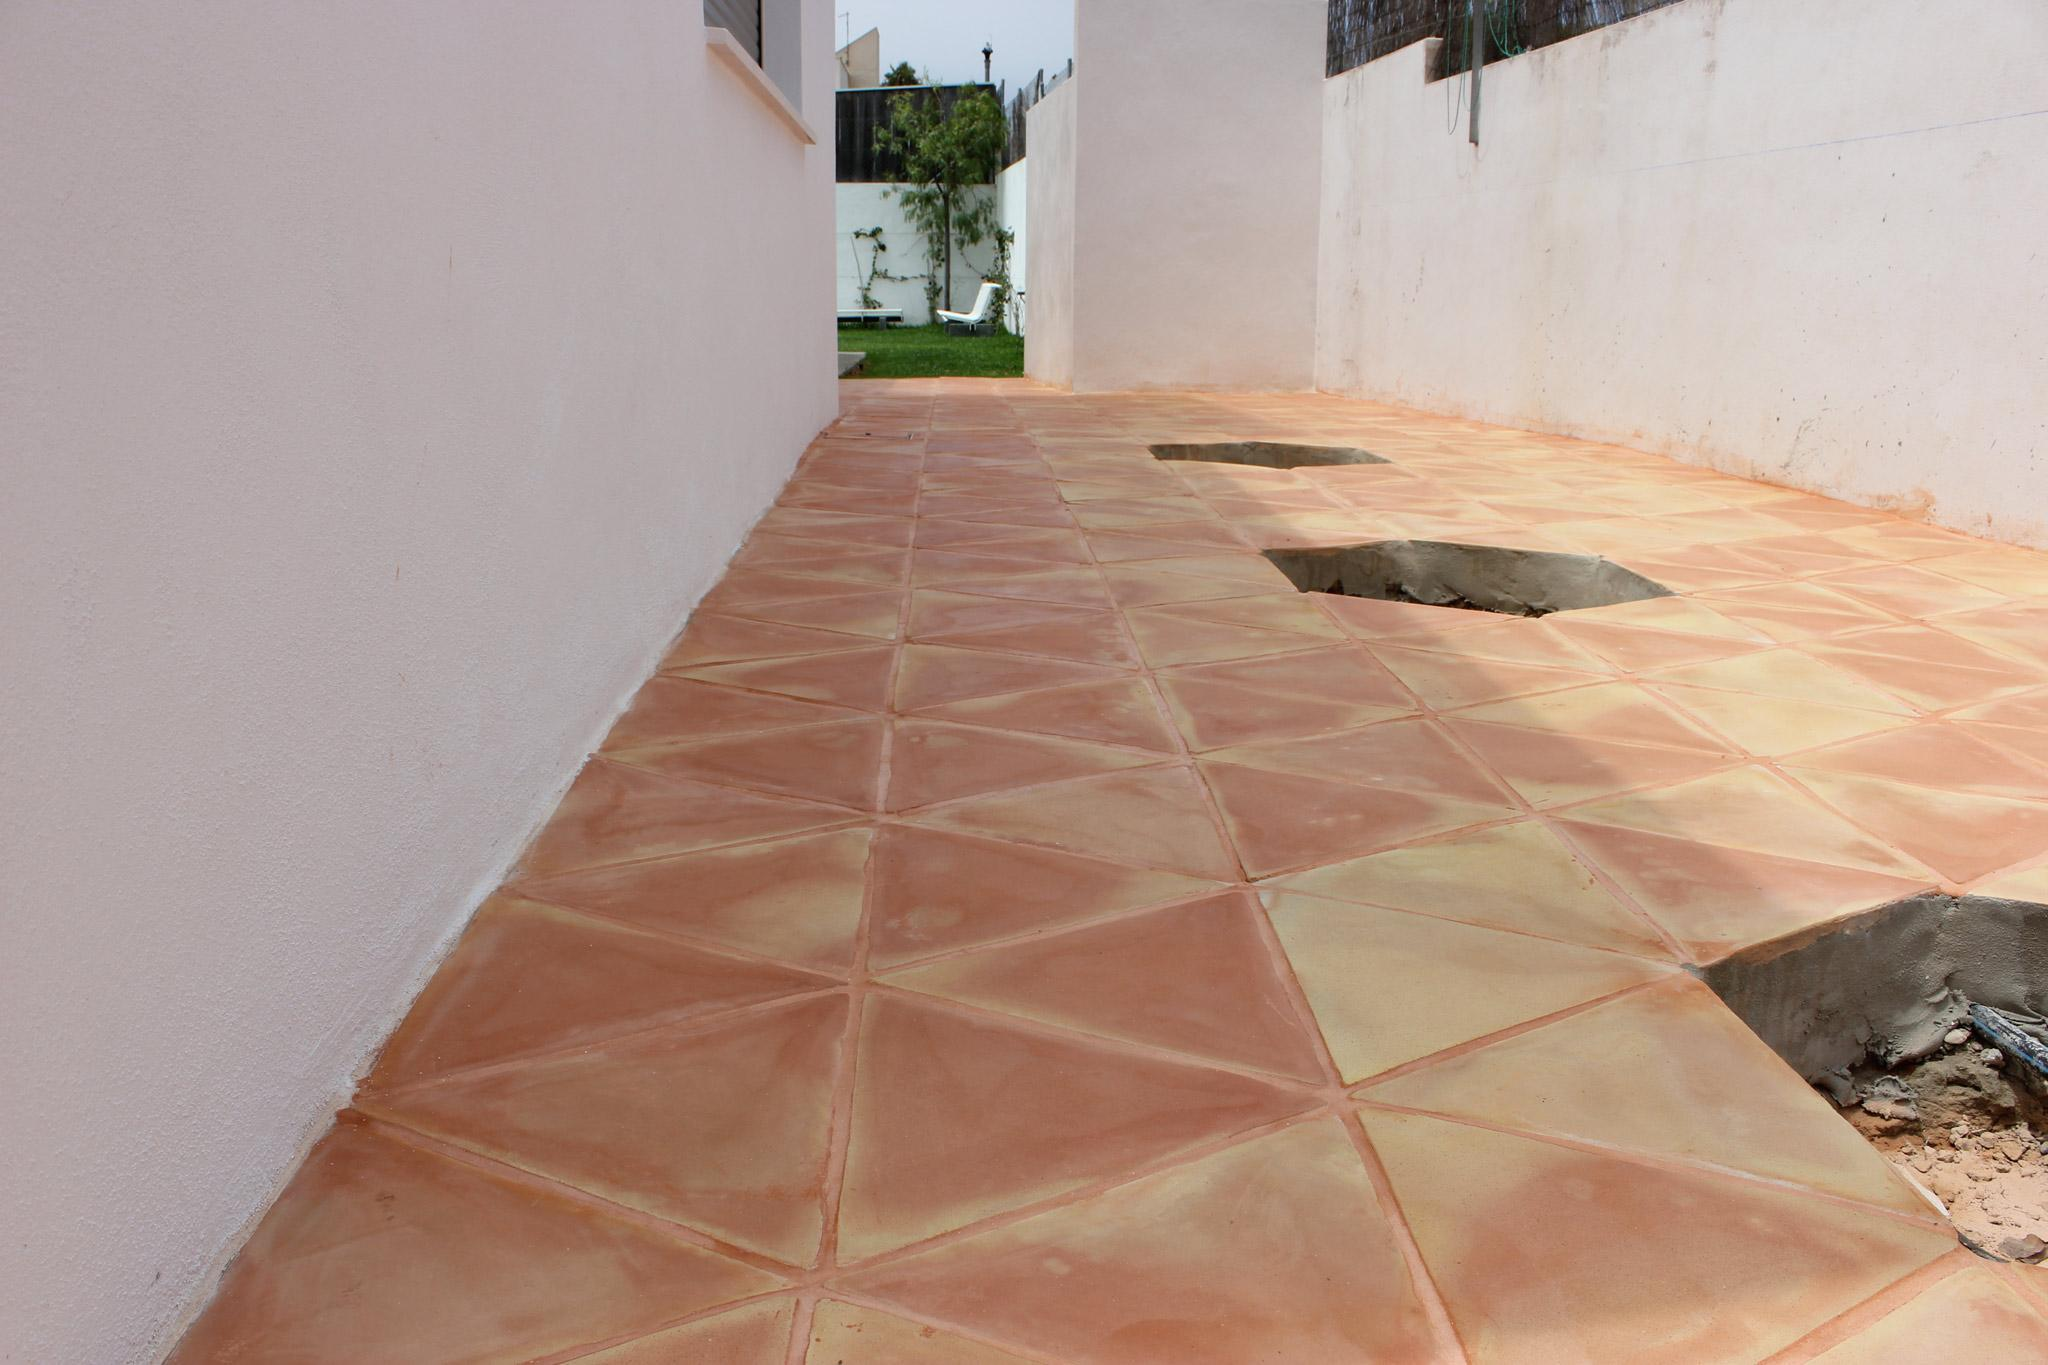 12 Pak Clay Pavers Floor Tiles Design and Price in Pakistan Images.